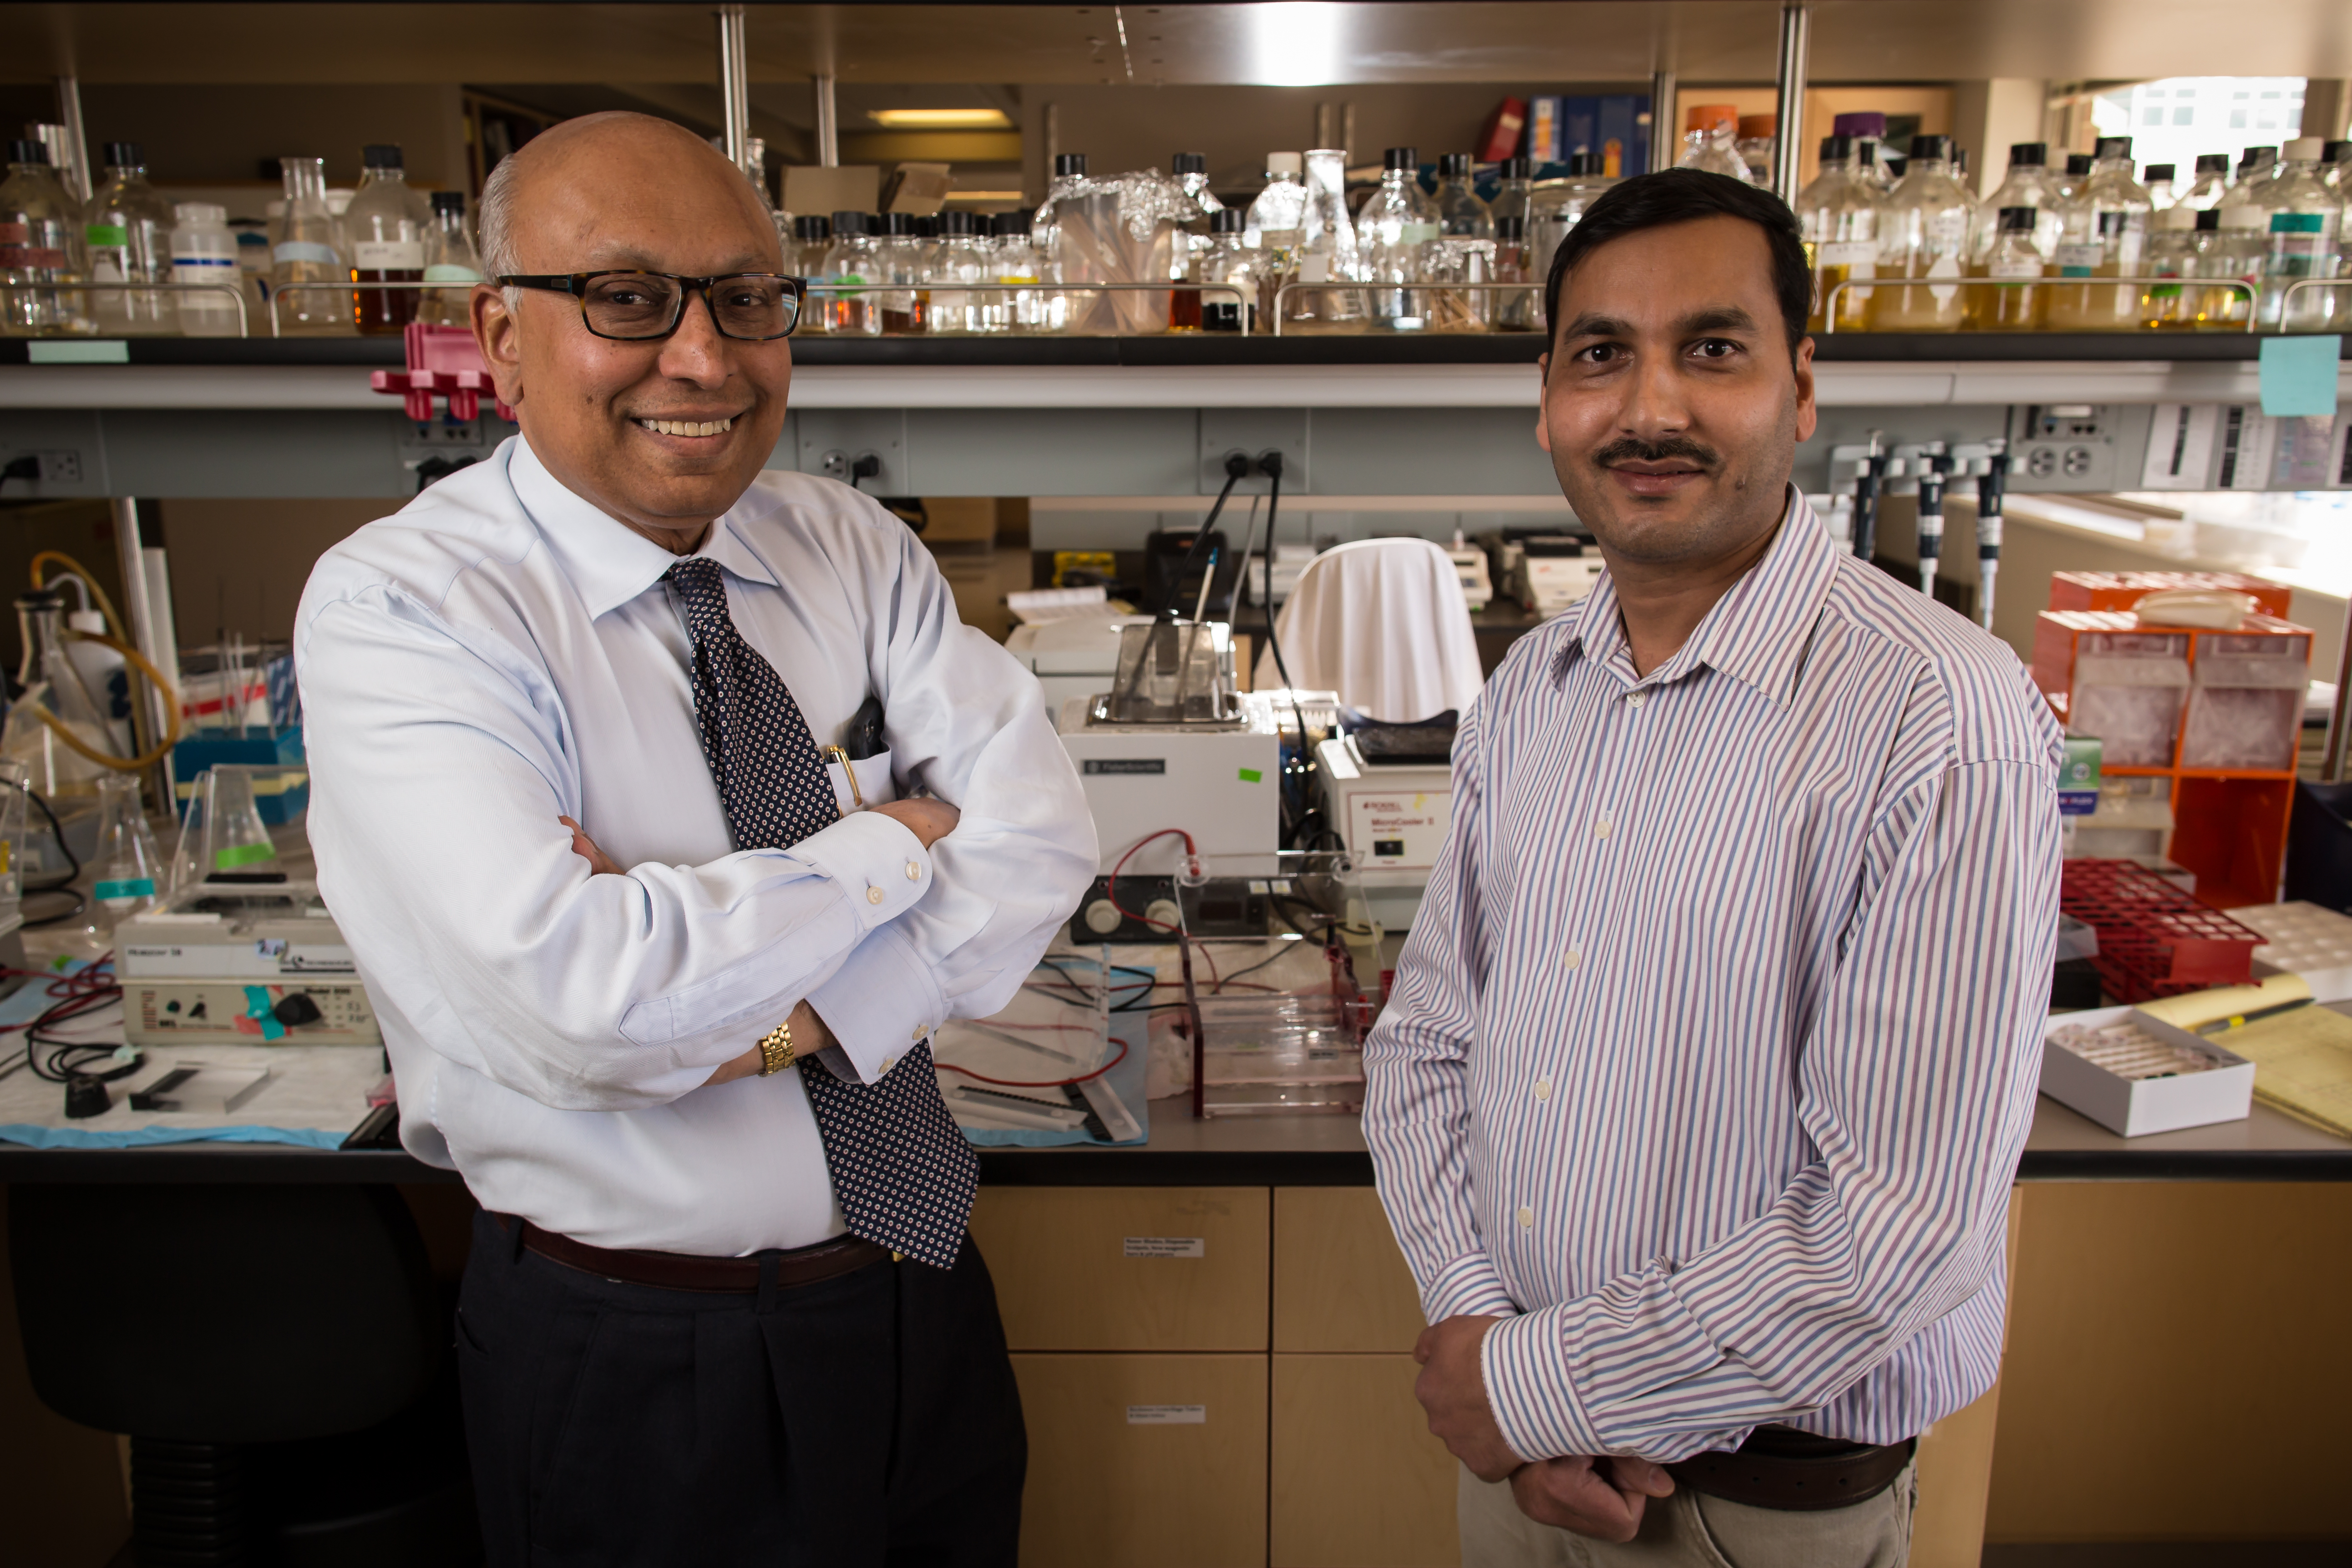 Sankar Swaminathan, M.D., professor of internal medicine and chief of infectious diseases, and Dinesh Verma, Ph.D., research assistant professor of internal medicine, University of Utah School of Medicine.